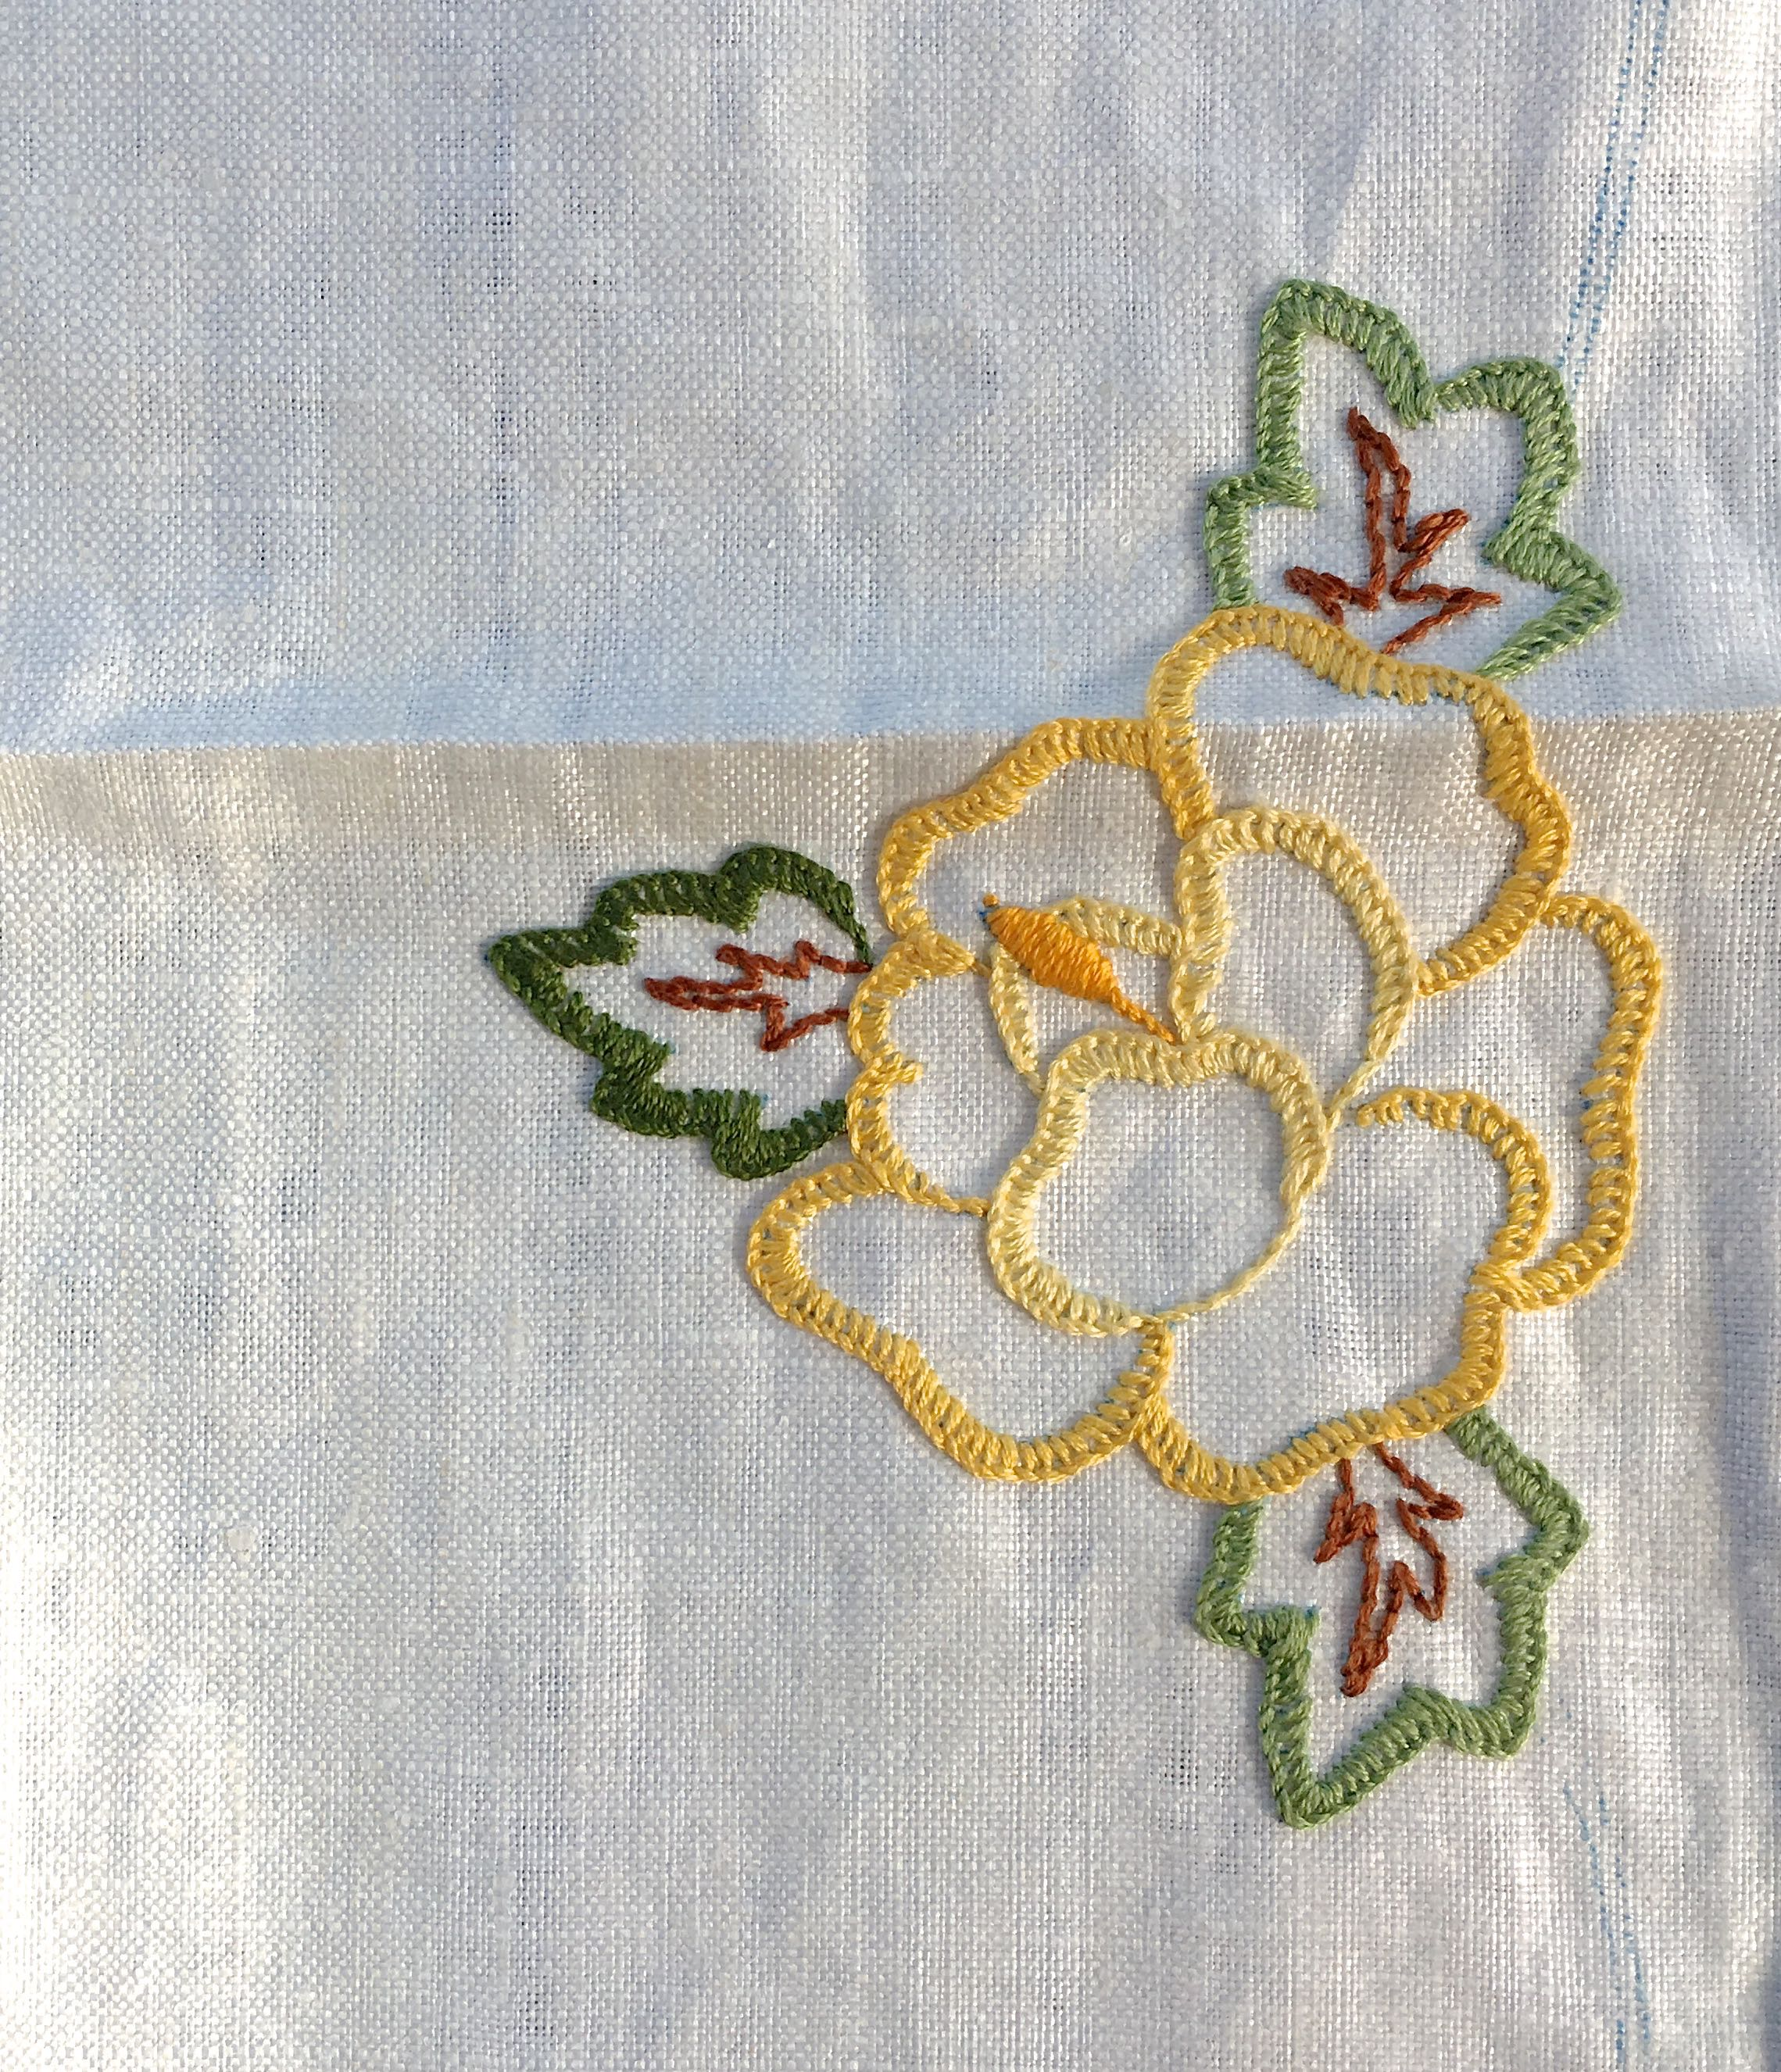 My linen tablecloth embroidery project - a completed yellow rose